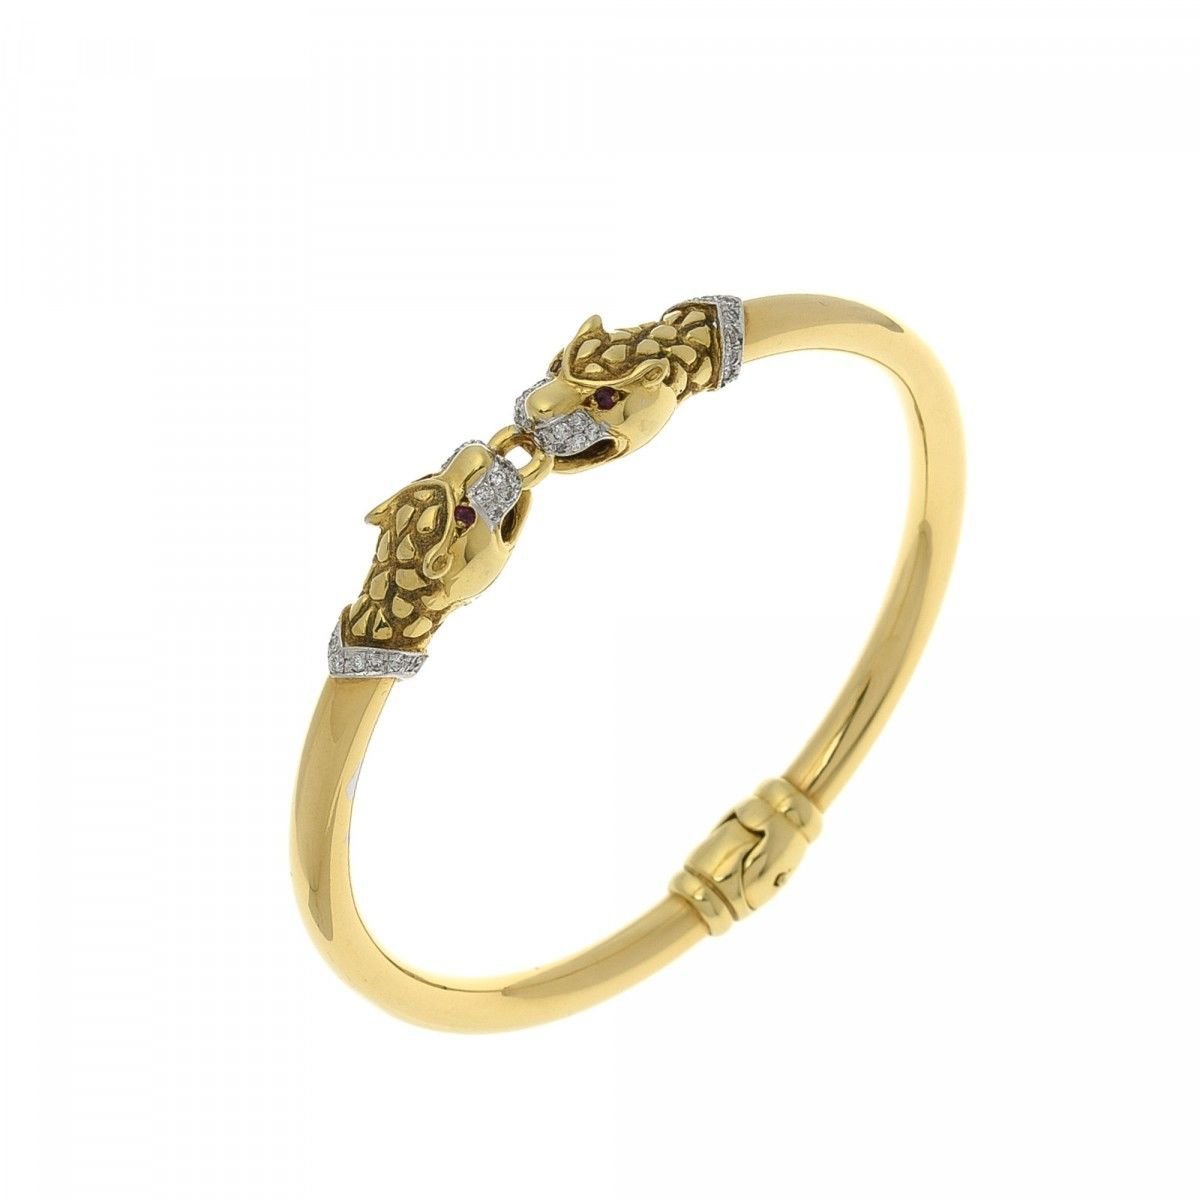 free today jewelry panther bracelet watches yellow shipping product overstock gold fremada